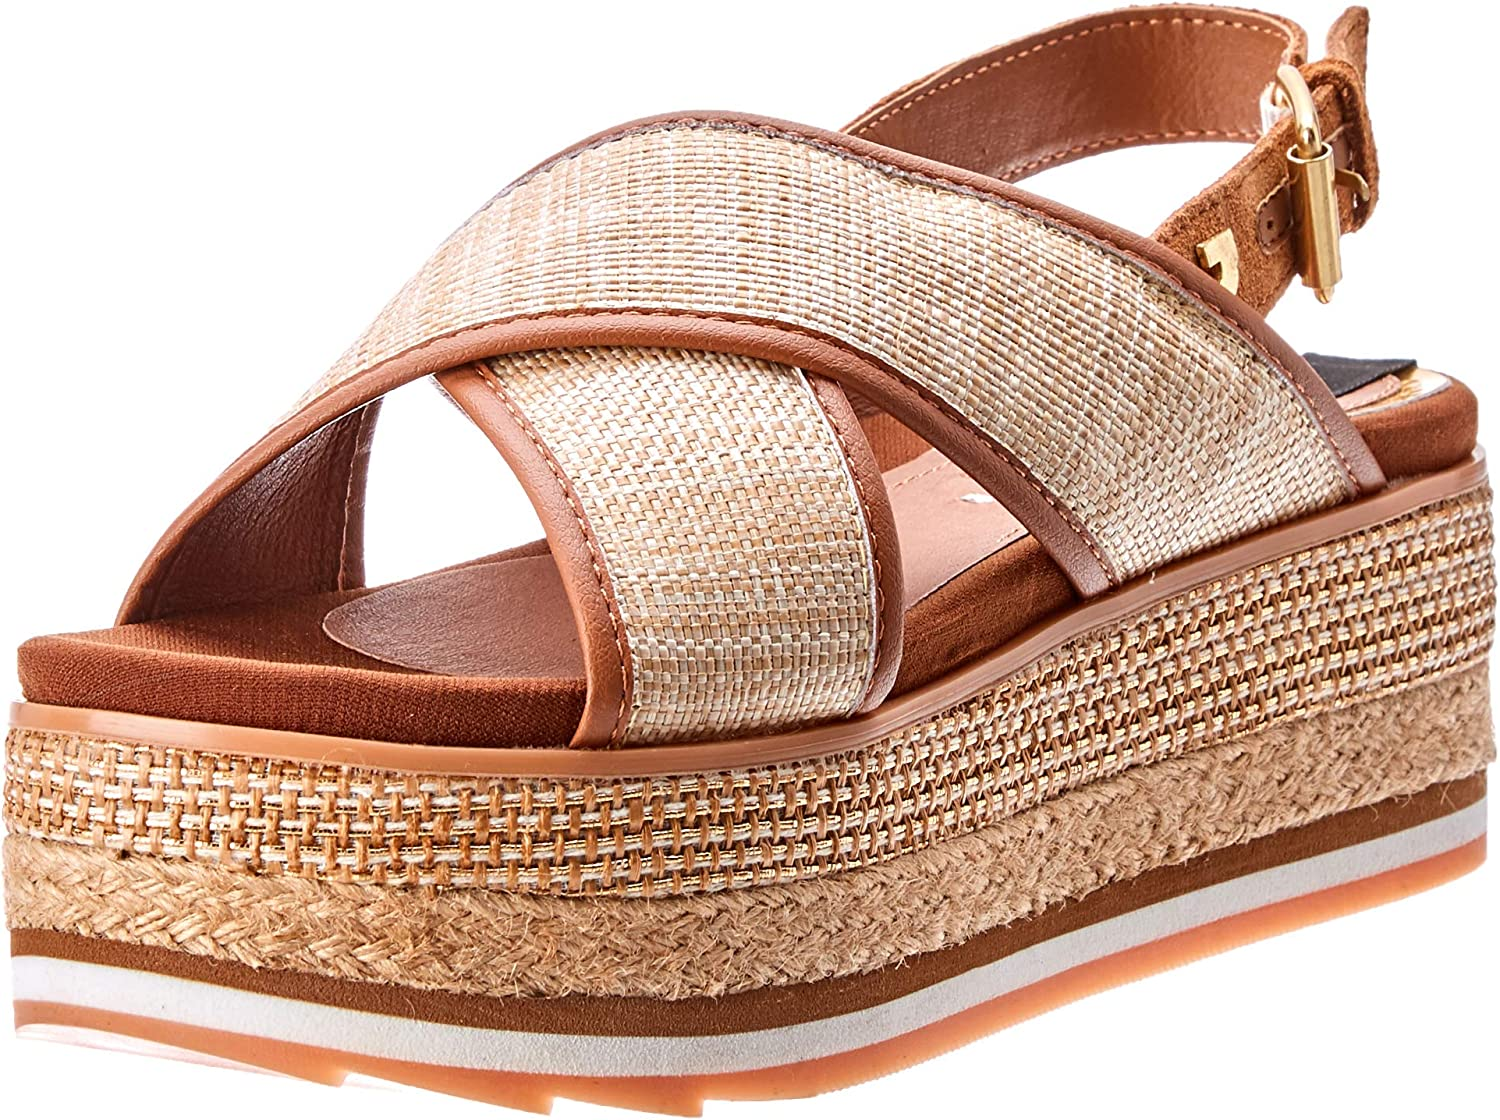 GIOSEPPO women's shoes wedge sandals 47205 NATURAL CHAIDARI